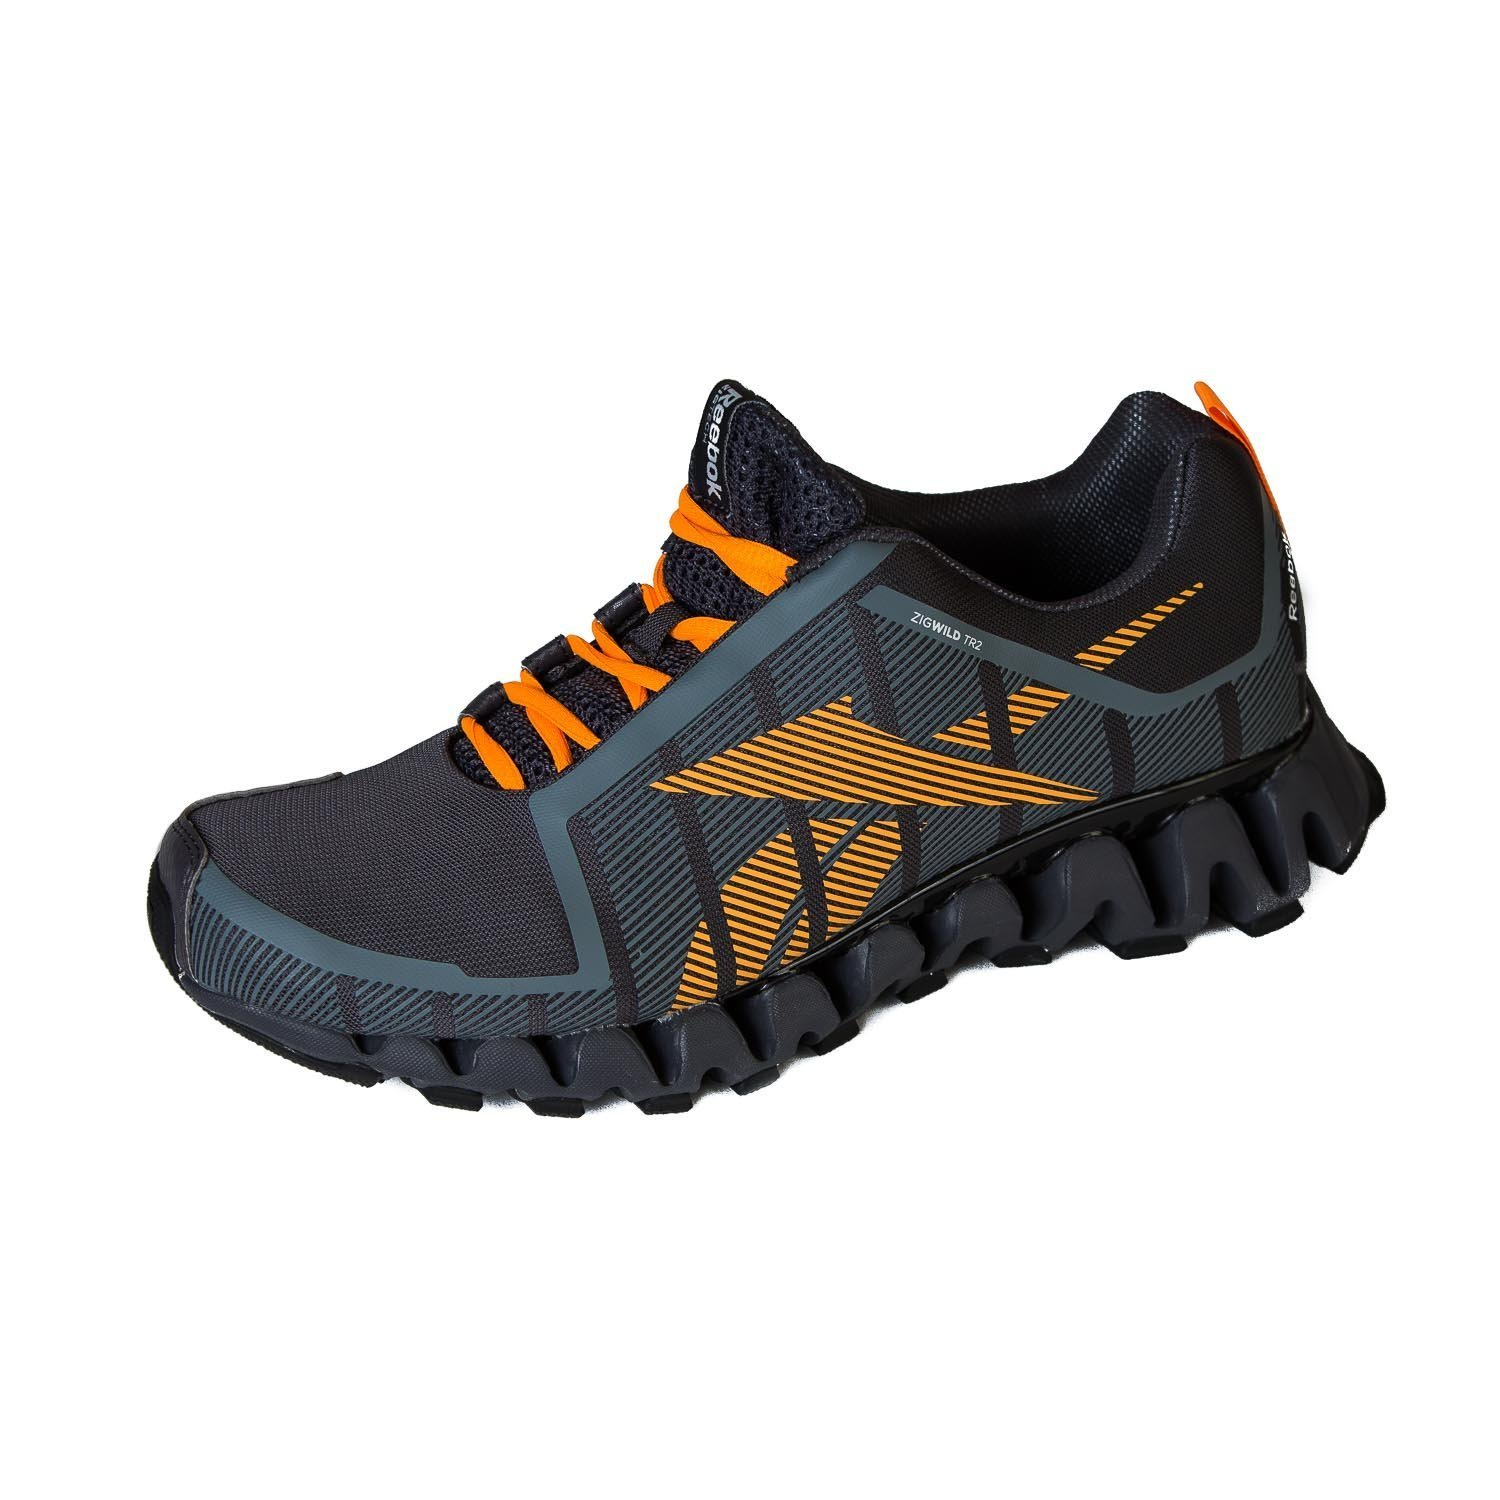 Reebok Mens ZigWild TR 2-M Running Shoes 8.5 Grey Firespark Black  Buy  Online at Low Prices in India - Amazon.in c03c72420